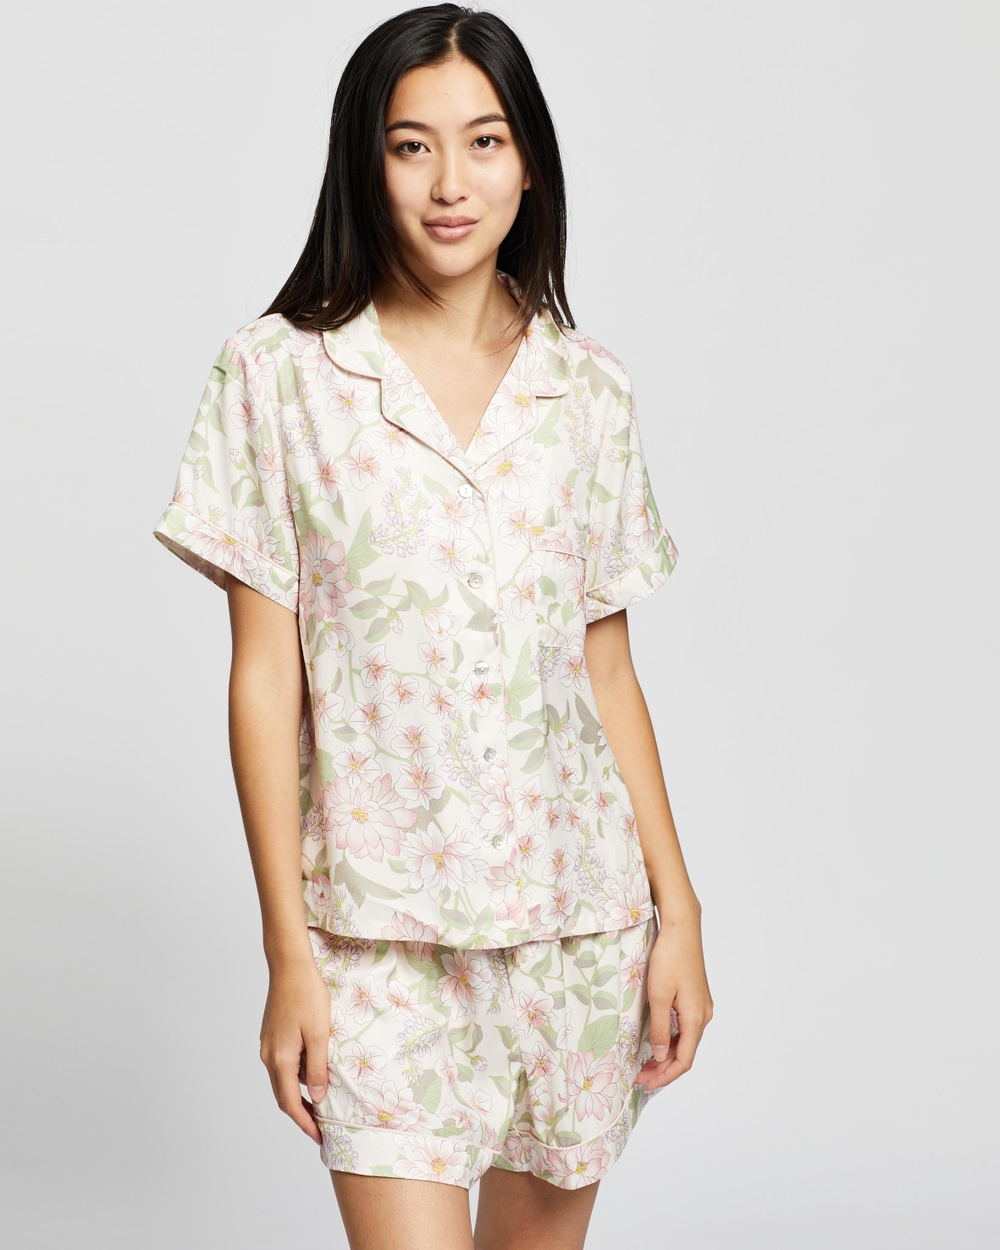 Gidget Short Sleeve PJ Set - Two-piece sets